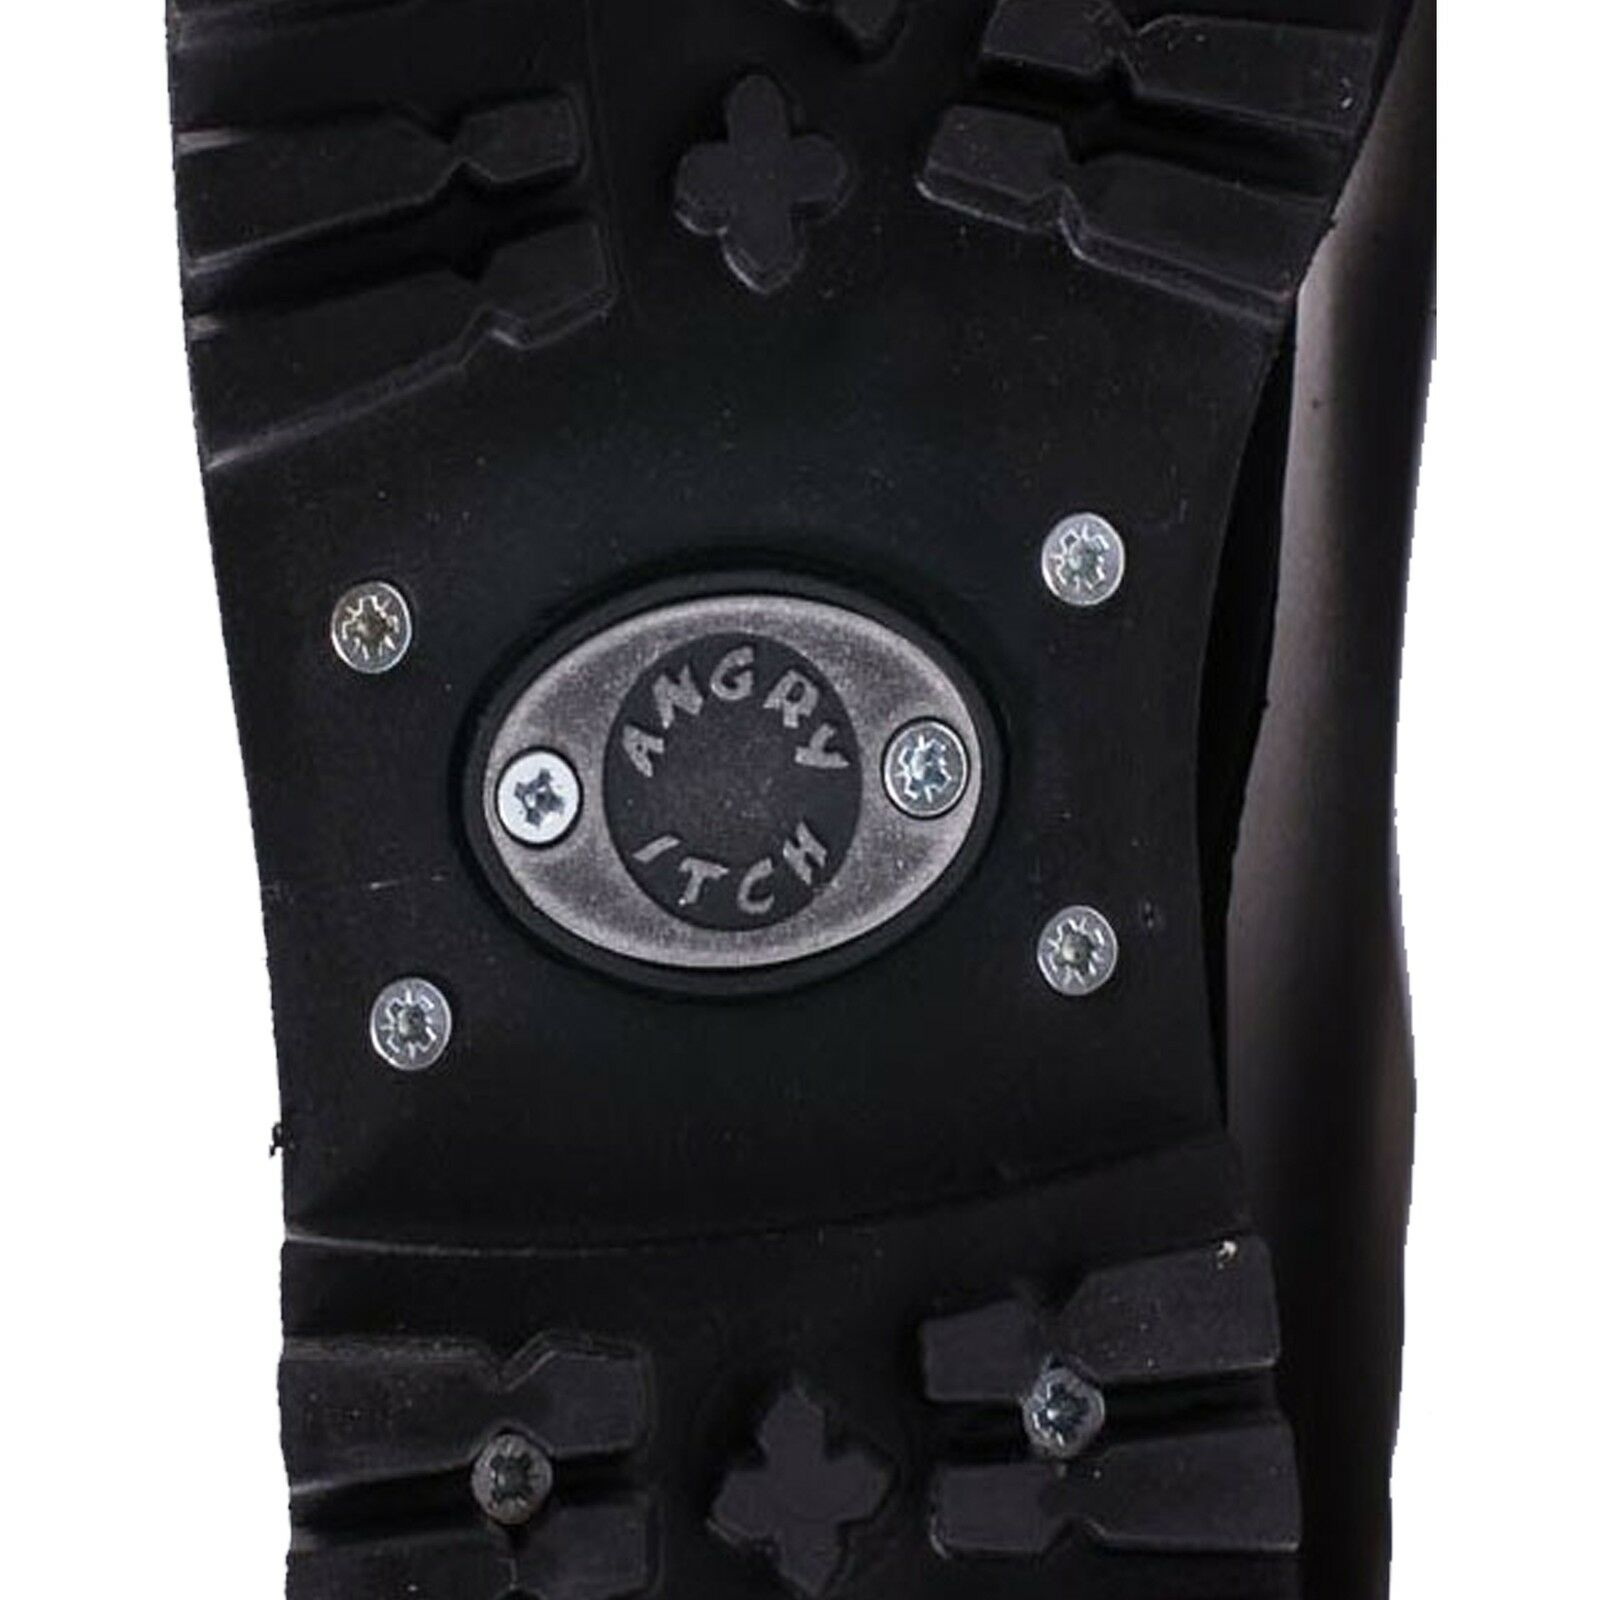 Angry Itch - 8-Loch Burgundy Rub off Gothic PunkLeder Stiefel mit Stahlkappe Mad